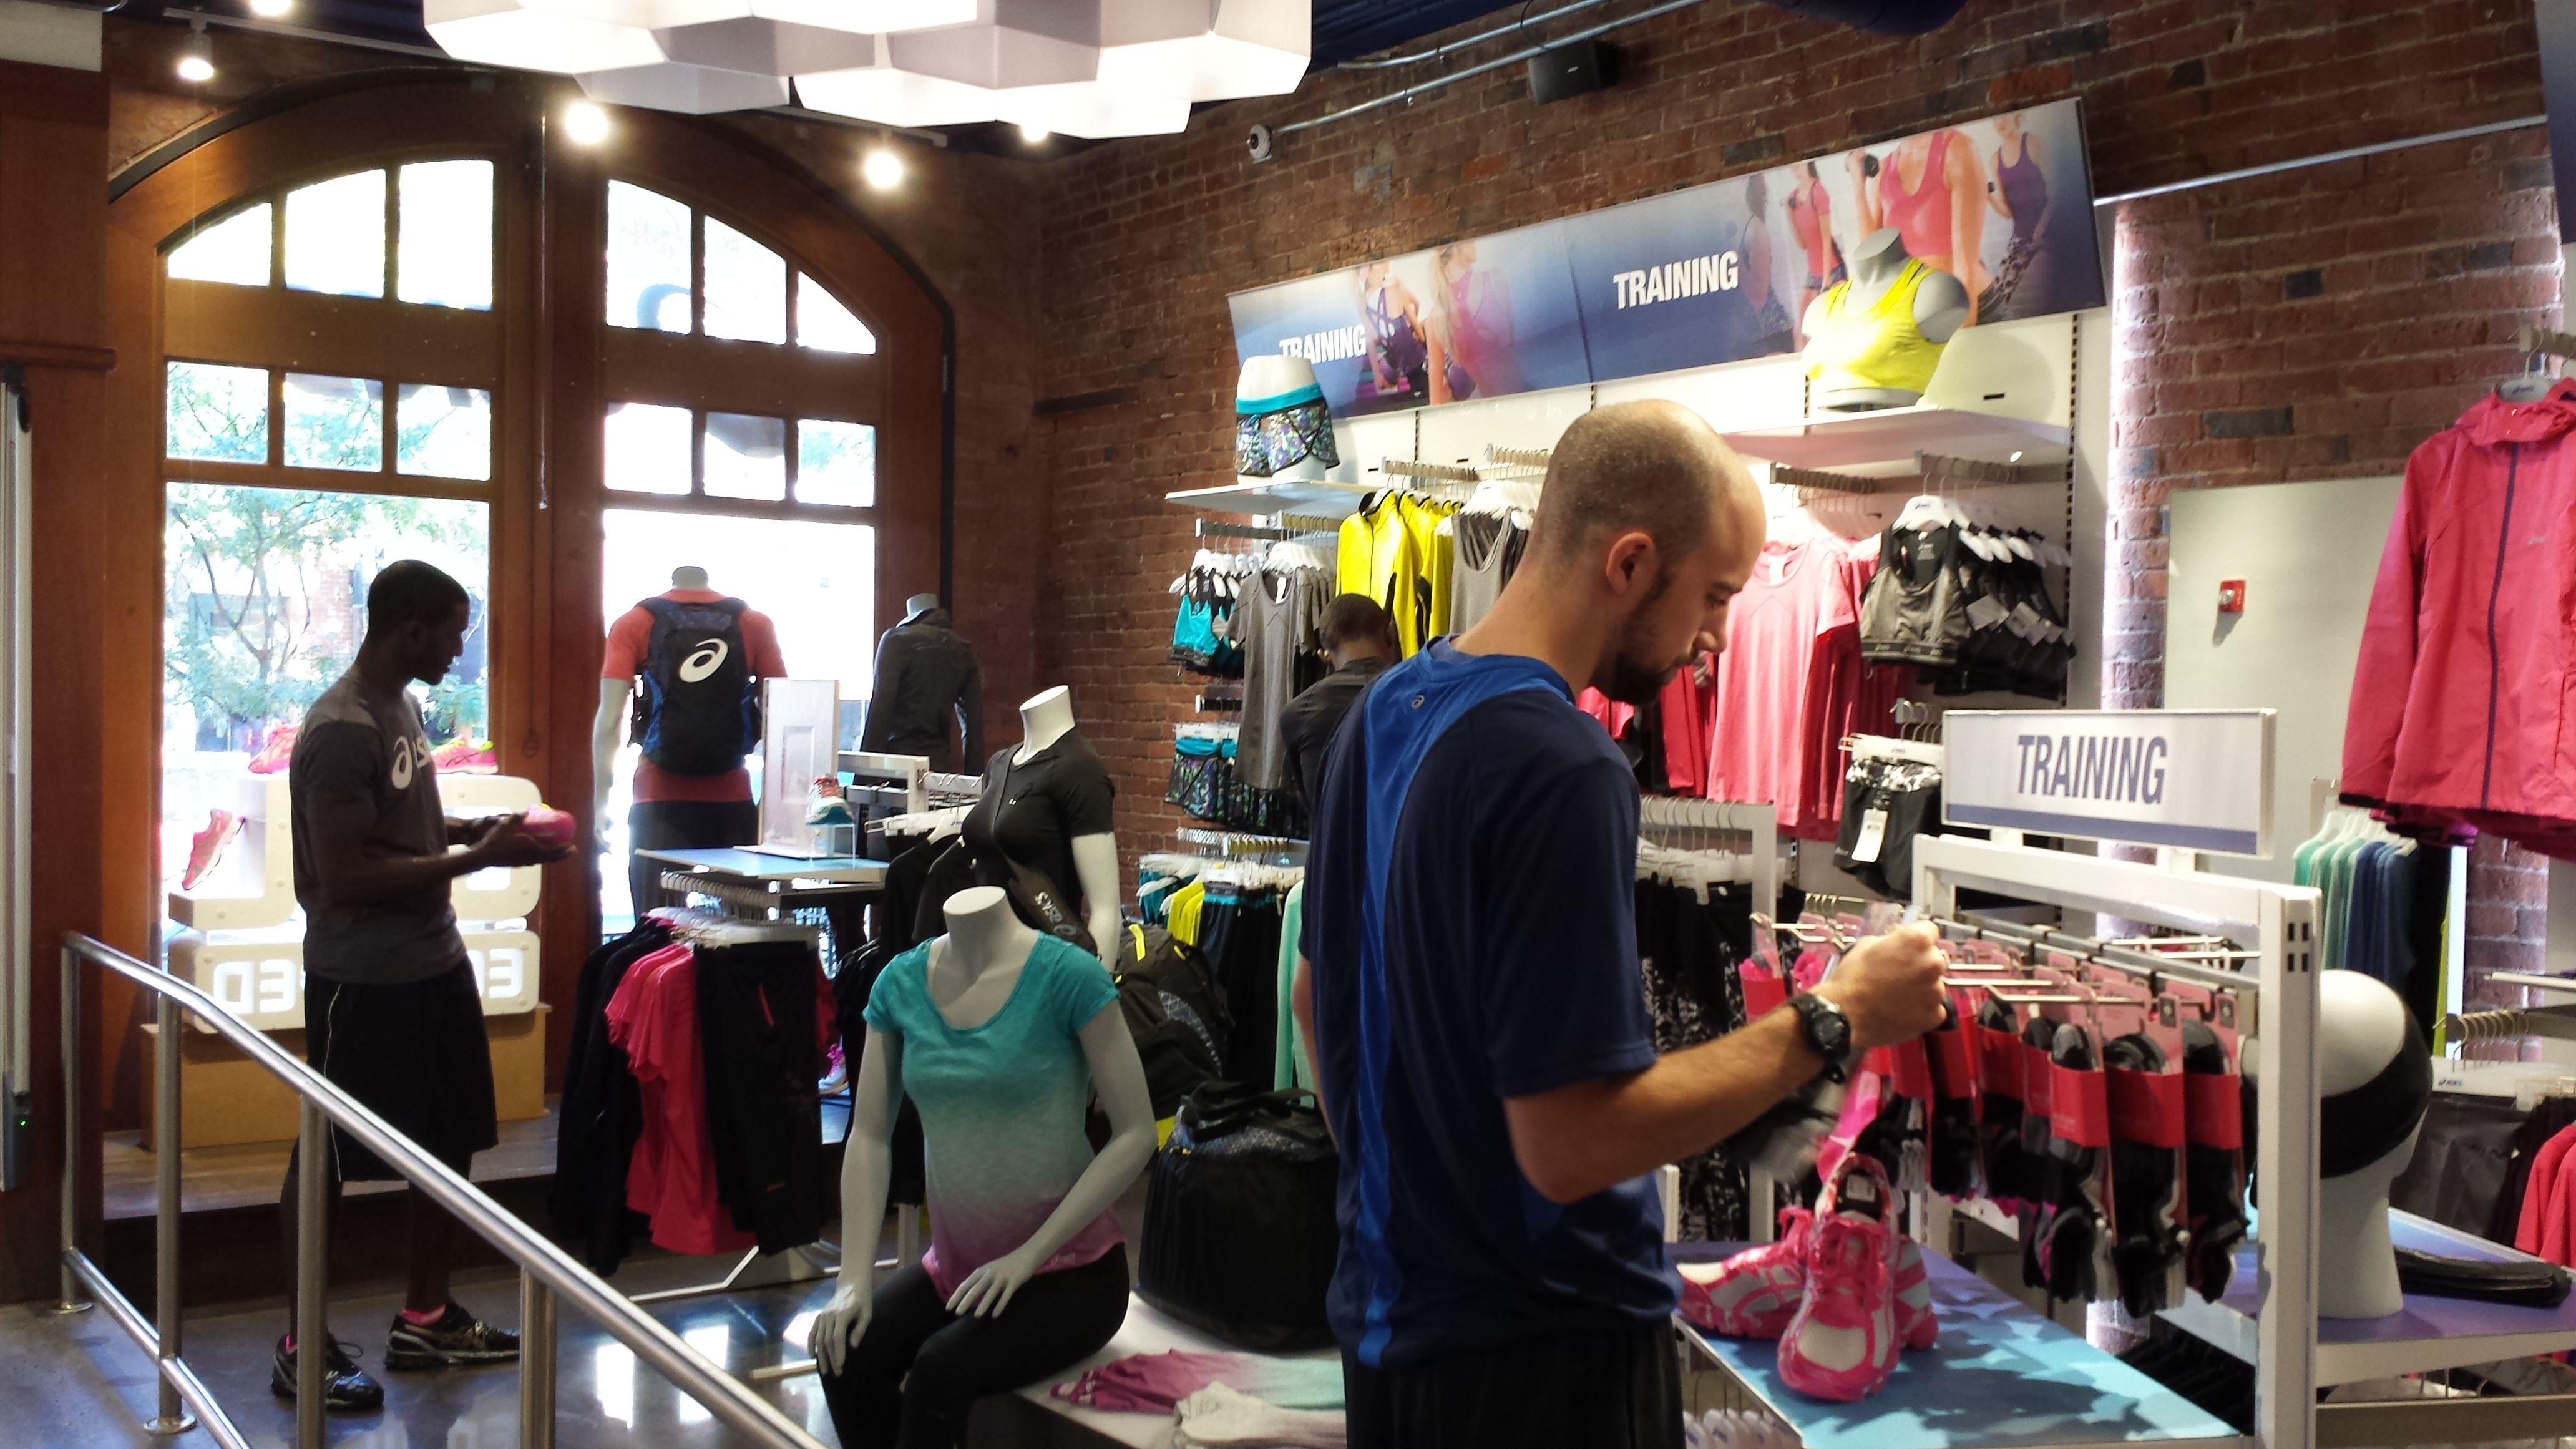 asics, store, shopping, apparel, boston